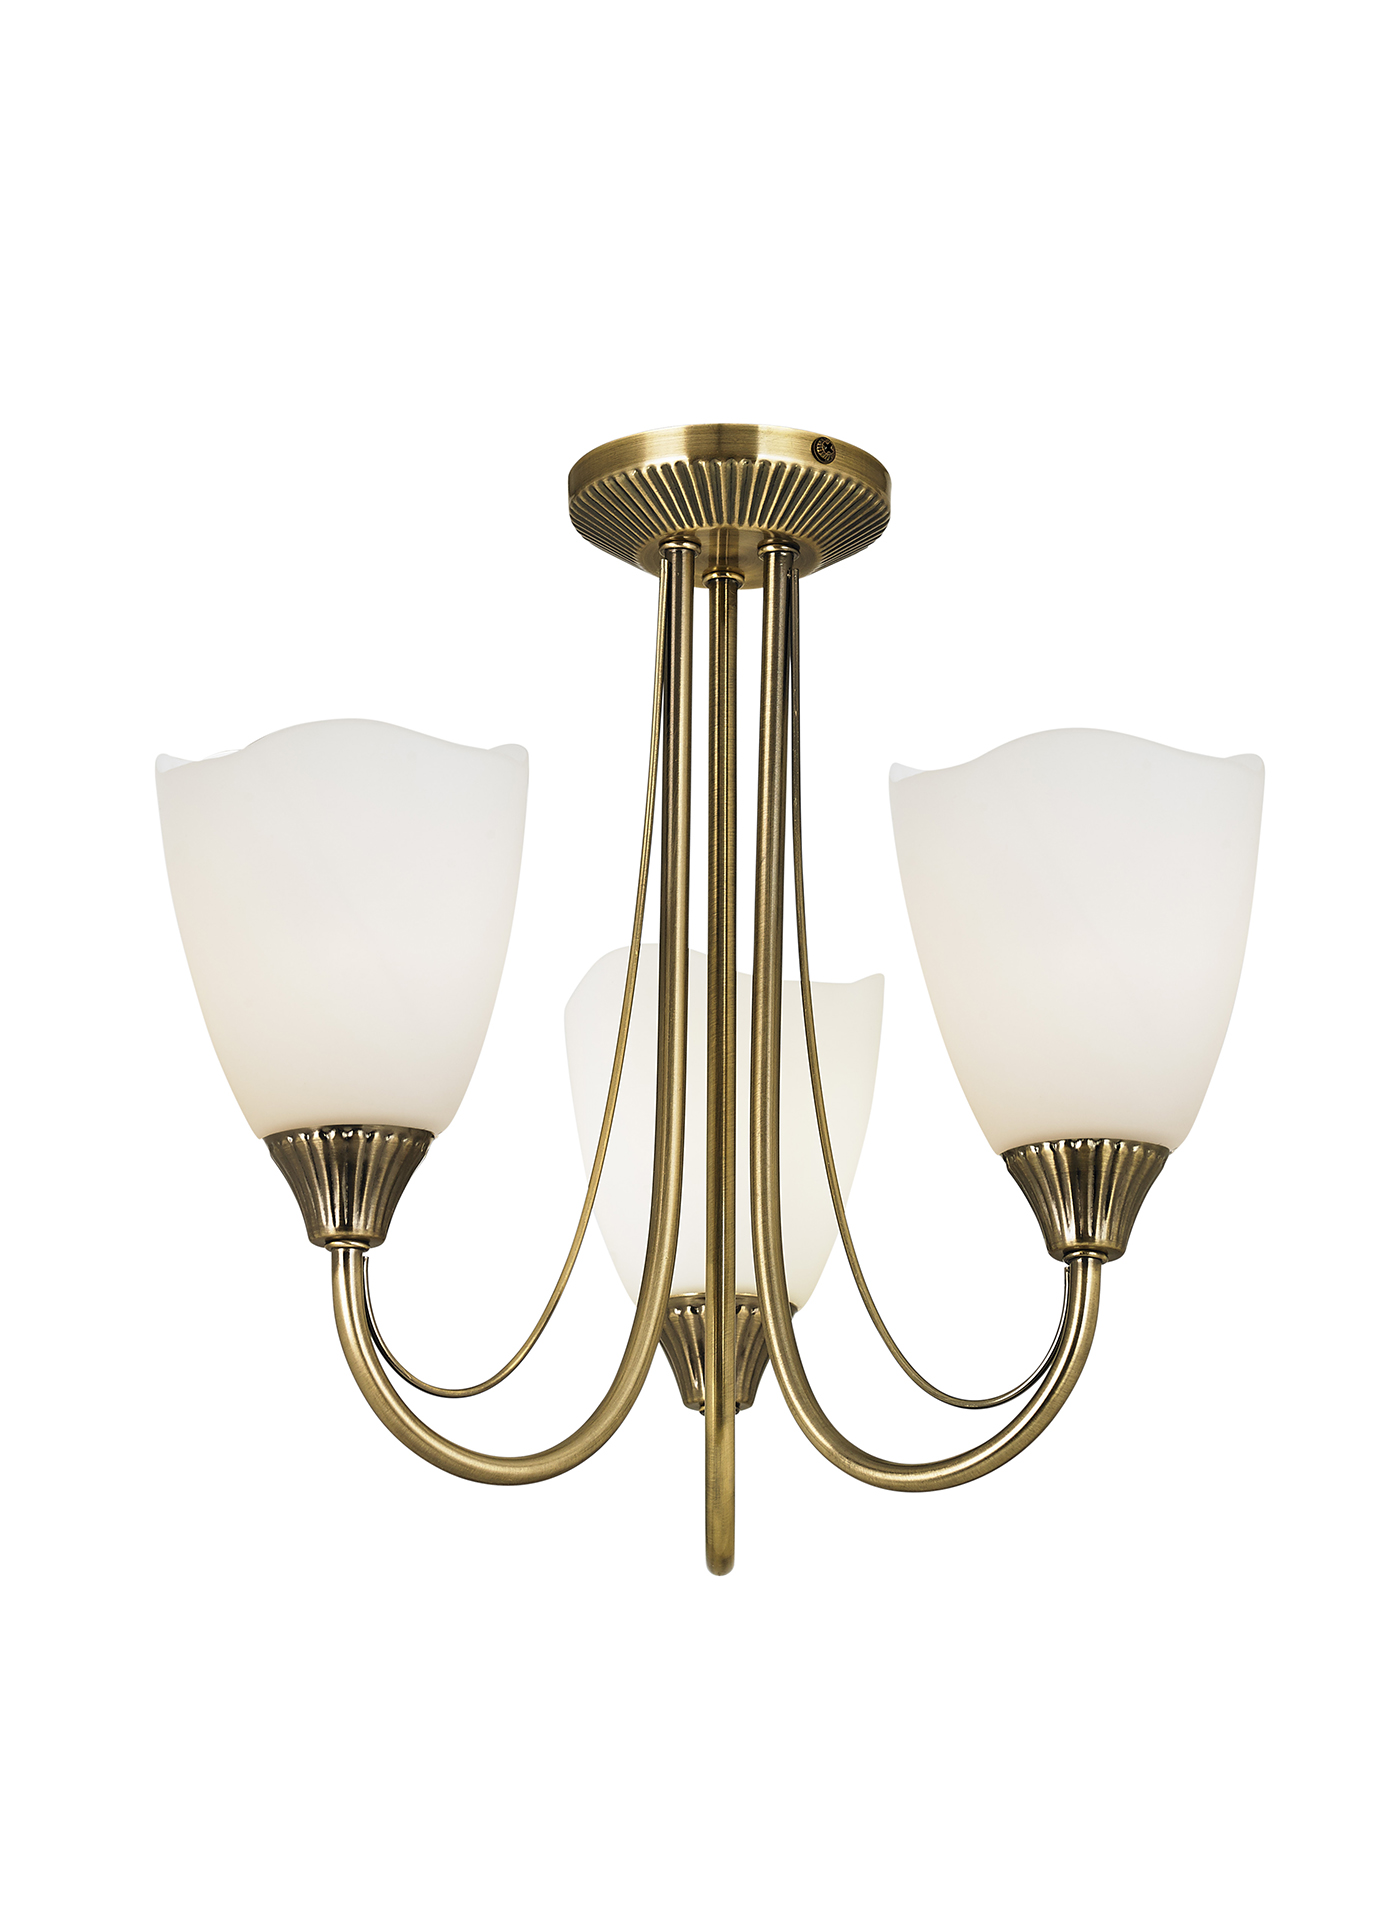 Endon Haughton ceiling light 3x 60W Antique brass effect plate & opal glass Thumbnail 1